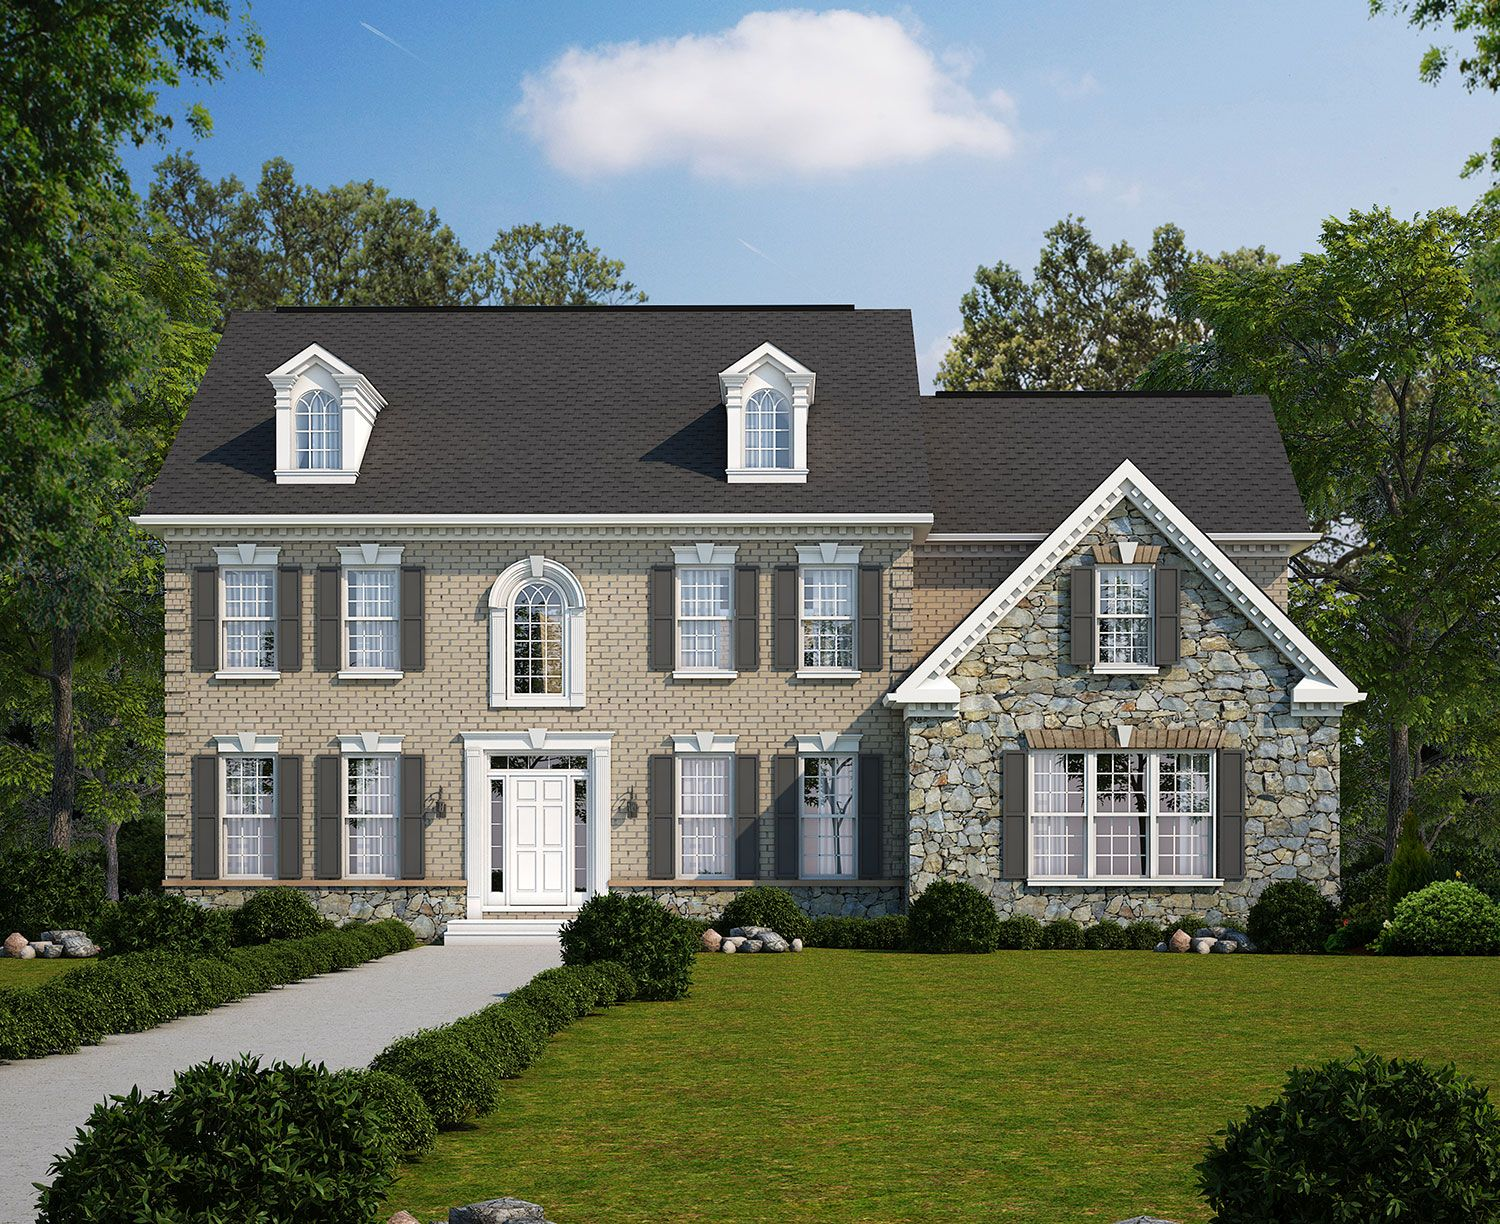 Rouen Ln   Classic Homes Of Maryland   Custom Build On Your Lot (Potomac)